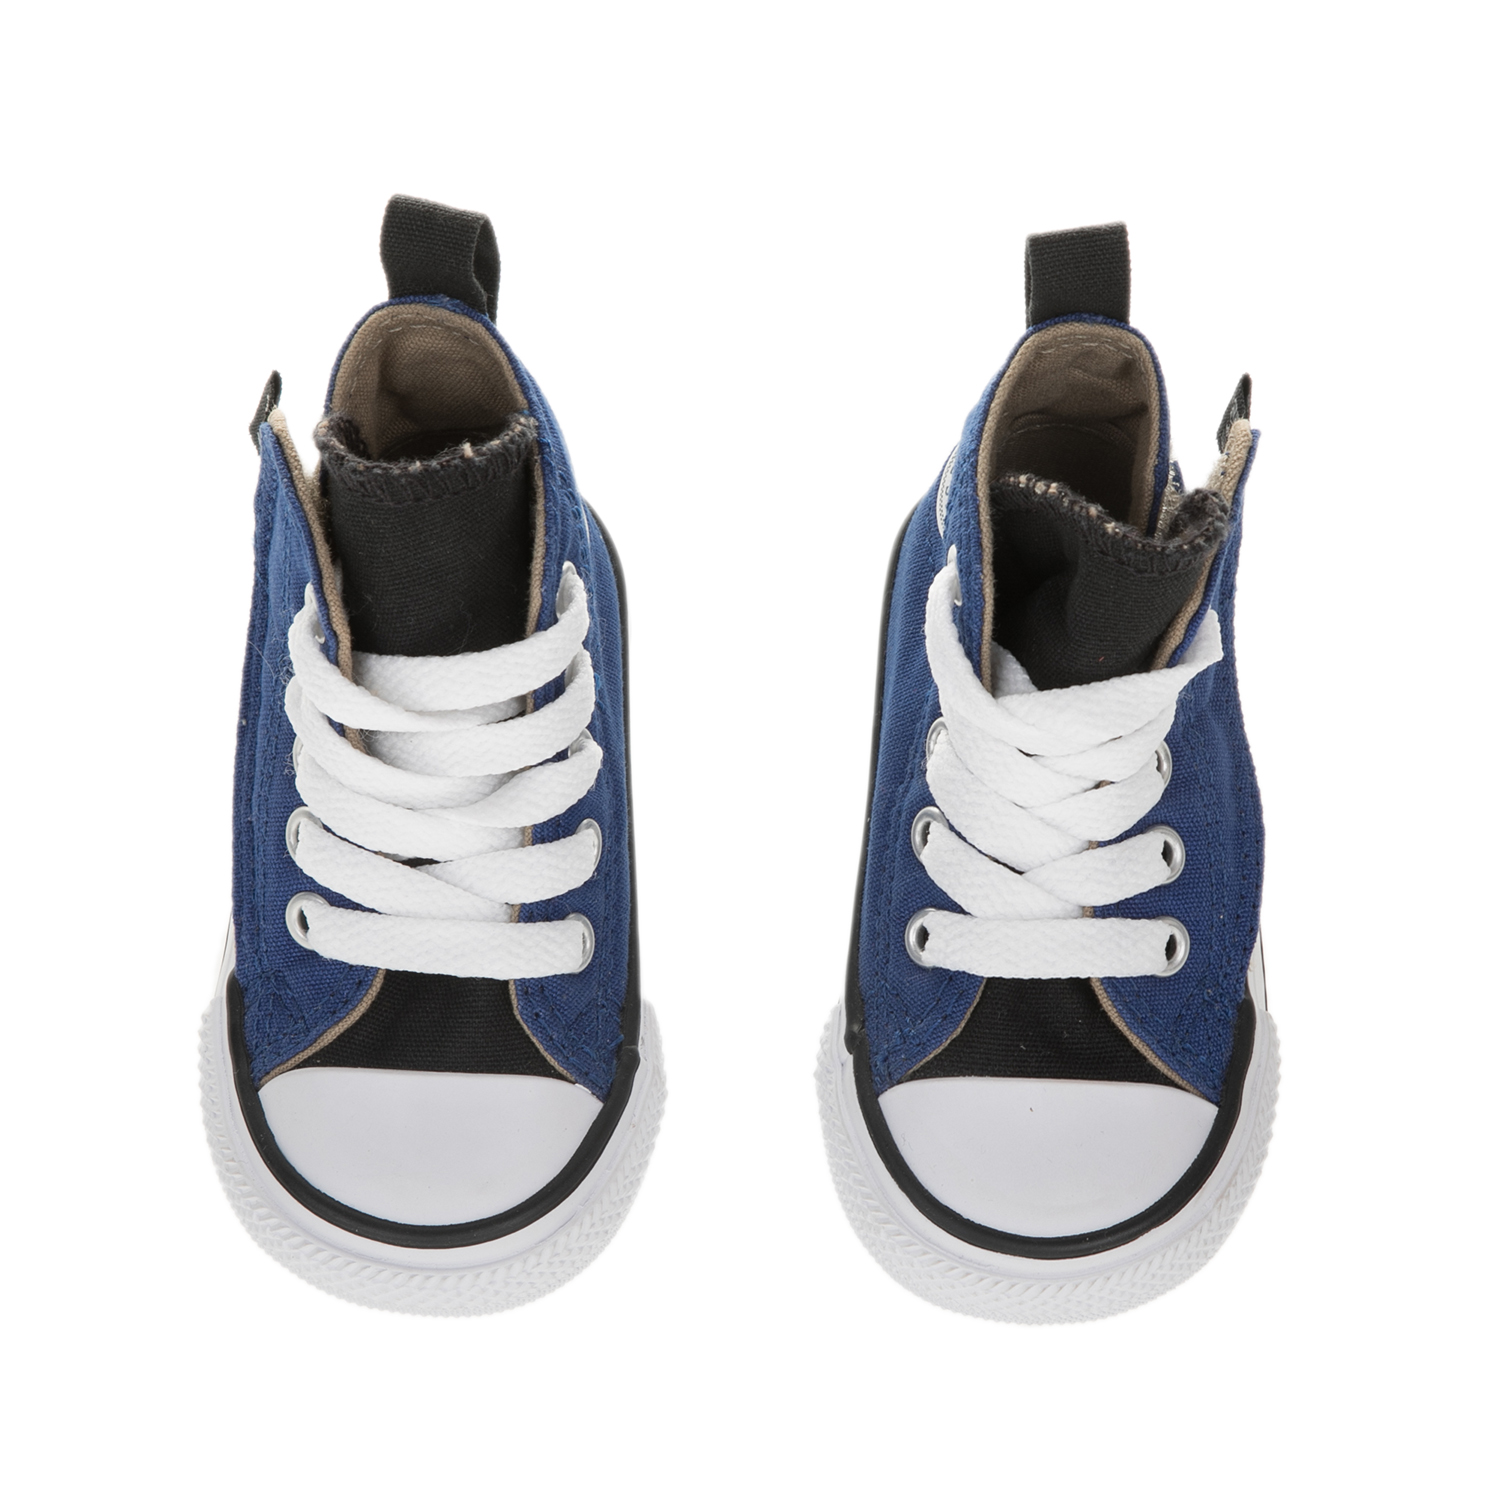 CONVERSE – Βρεφικά μποτάκια Chuck Taylor All Star Simple S μπλε